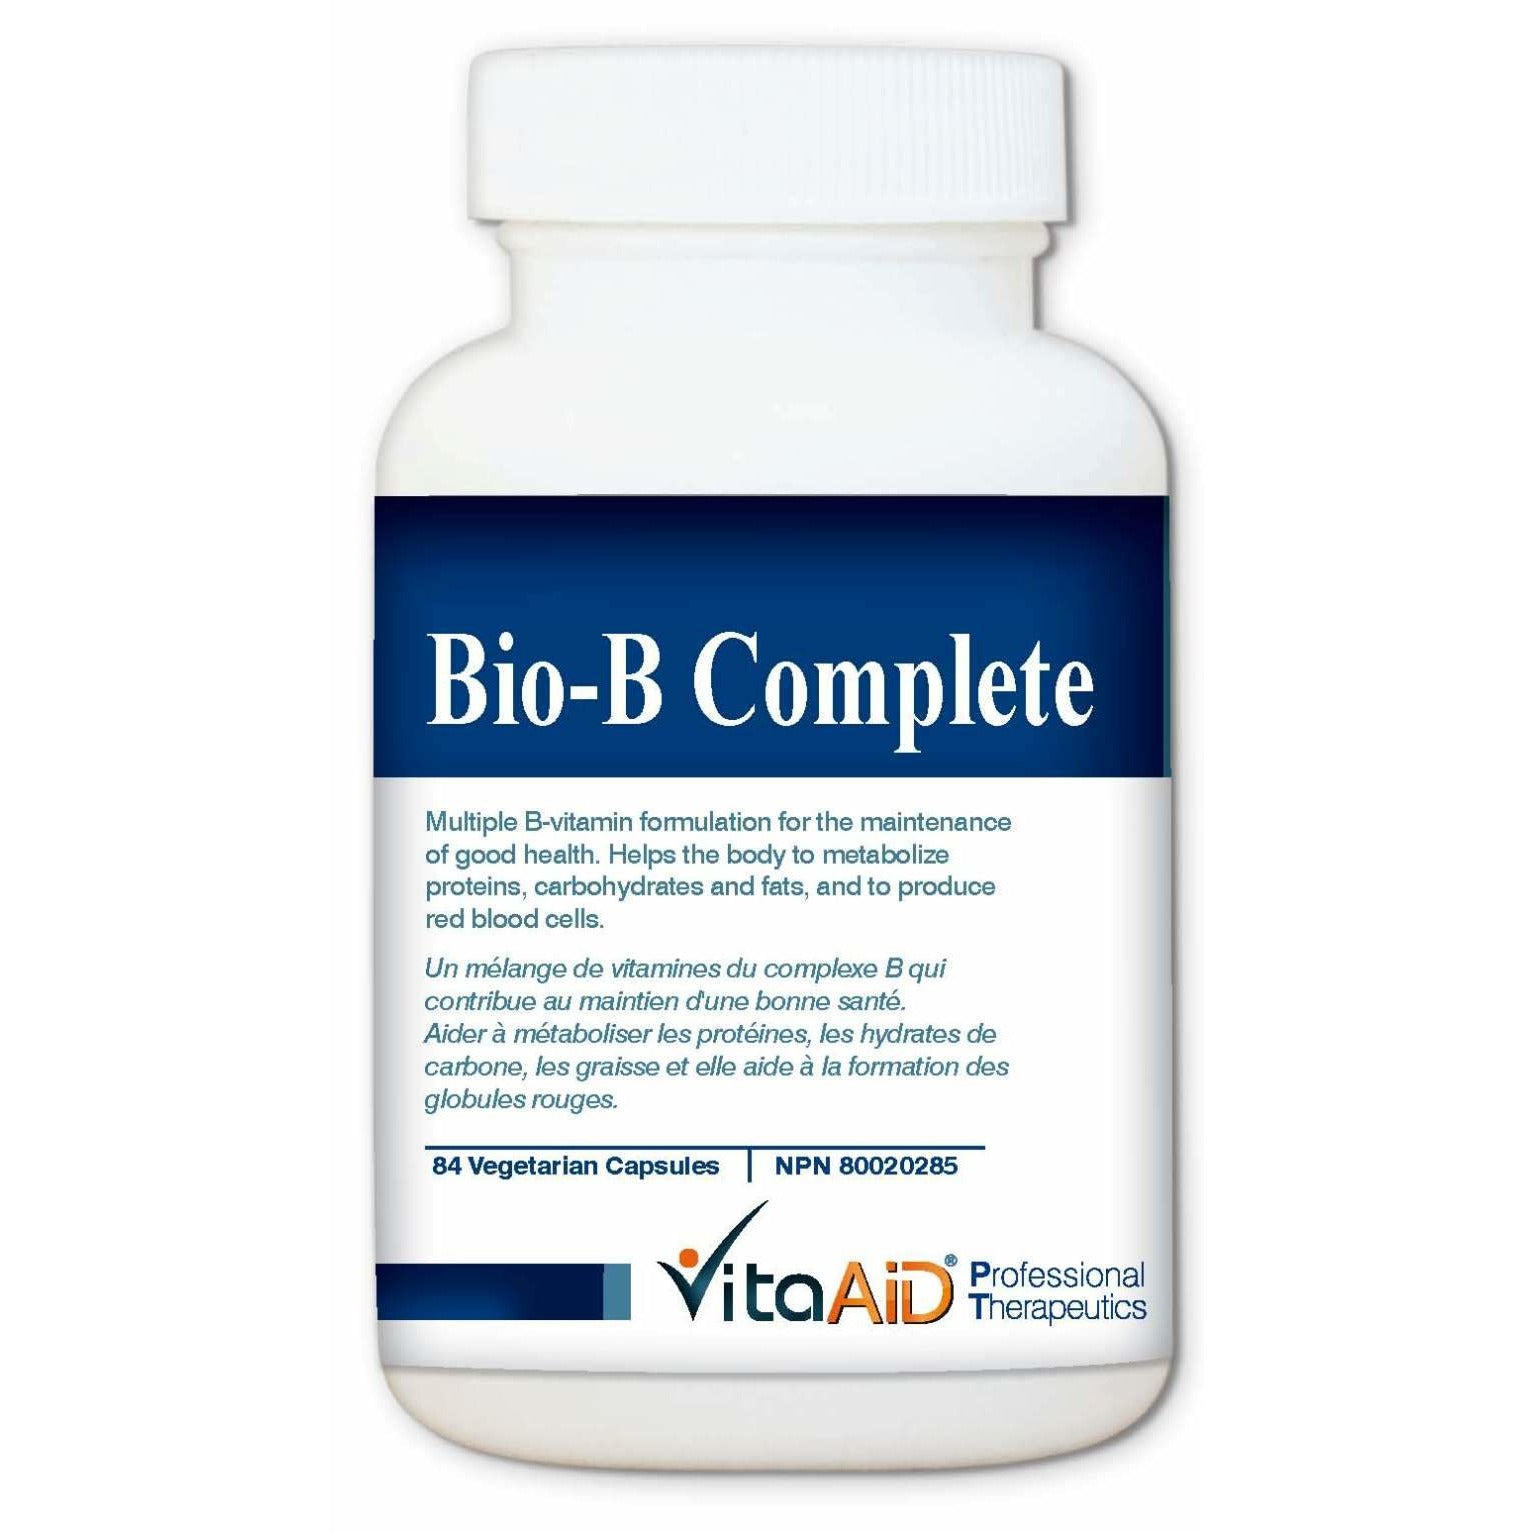 Bio-B Complete Balanced Formulation of B-Vitamins and Lipotrophic Agents for Energy Support 84 veg caps